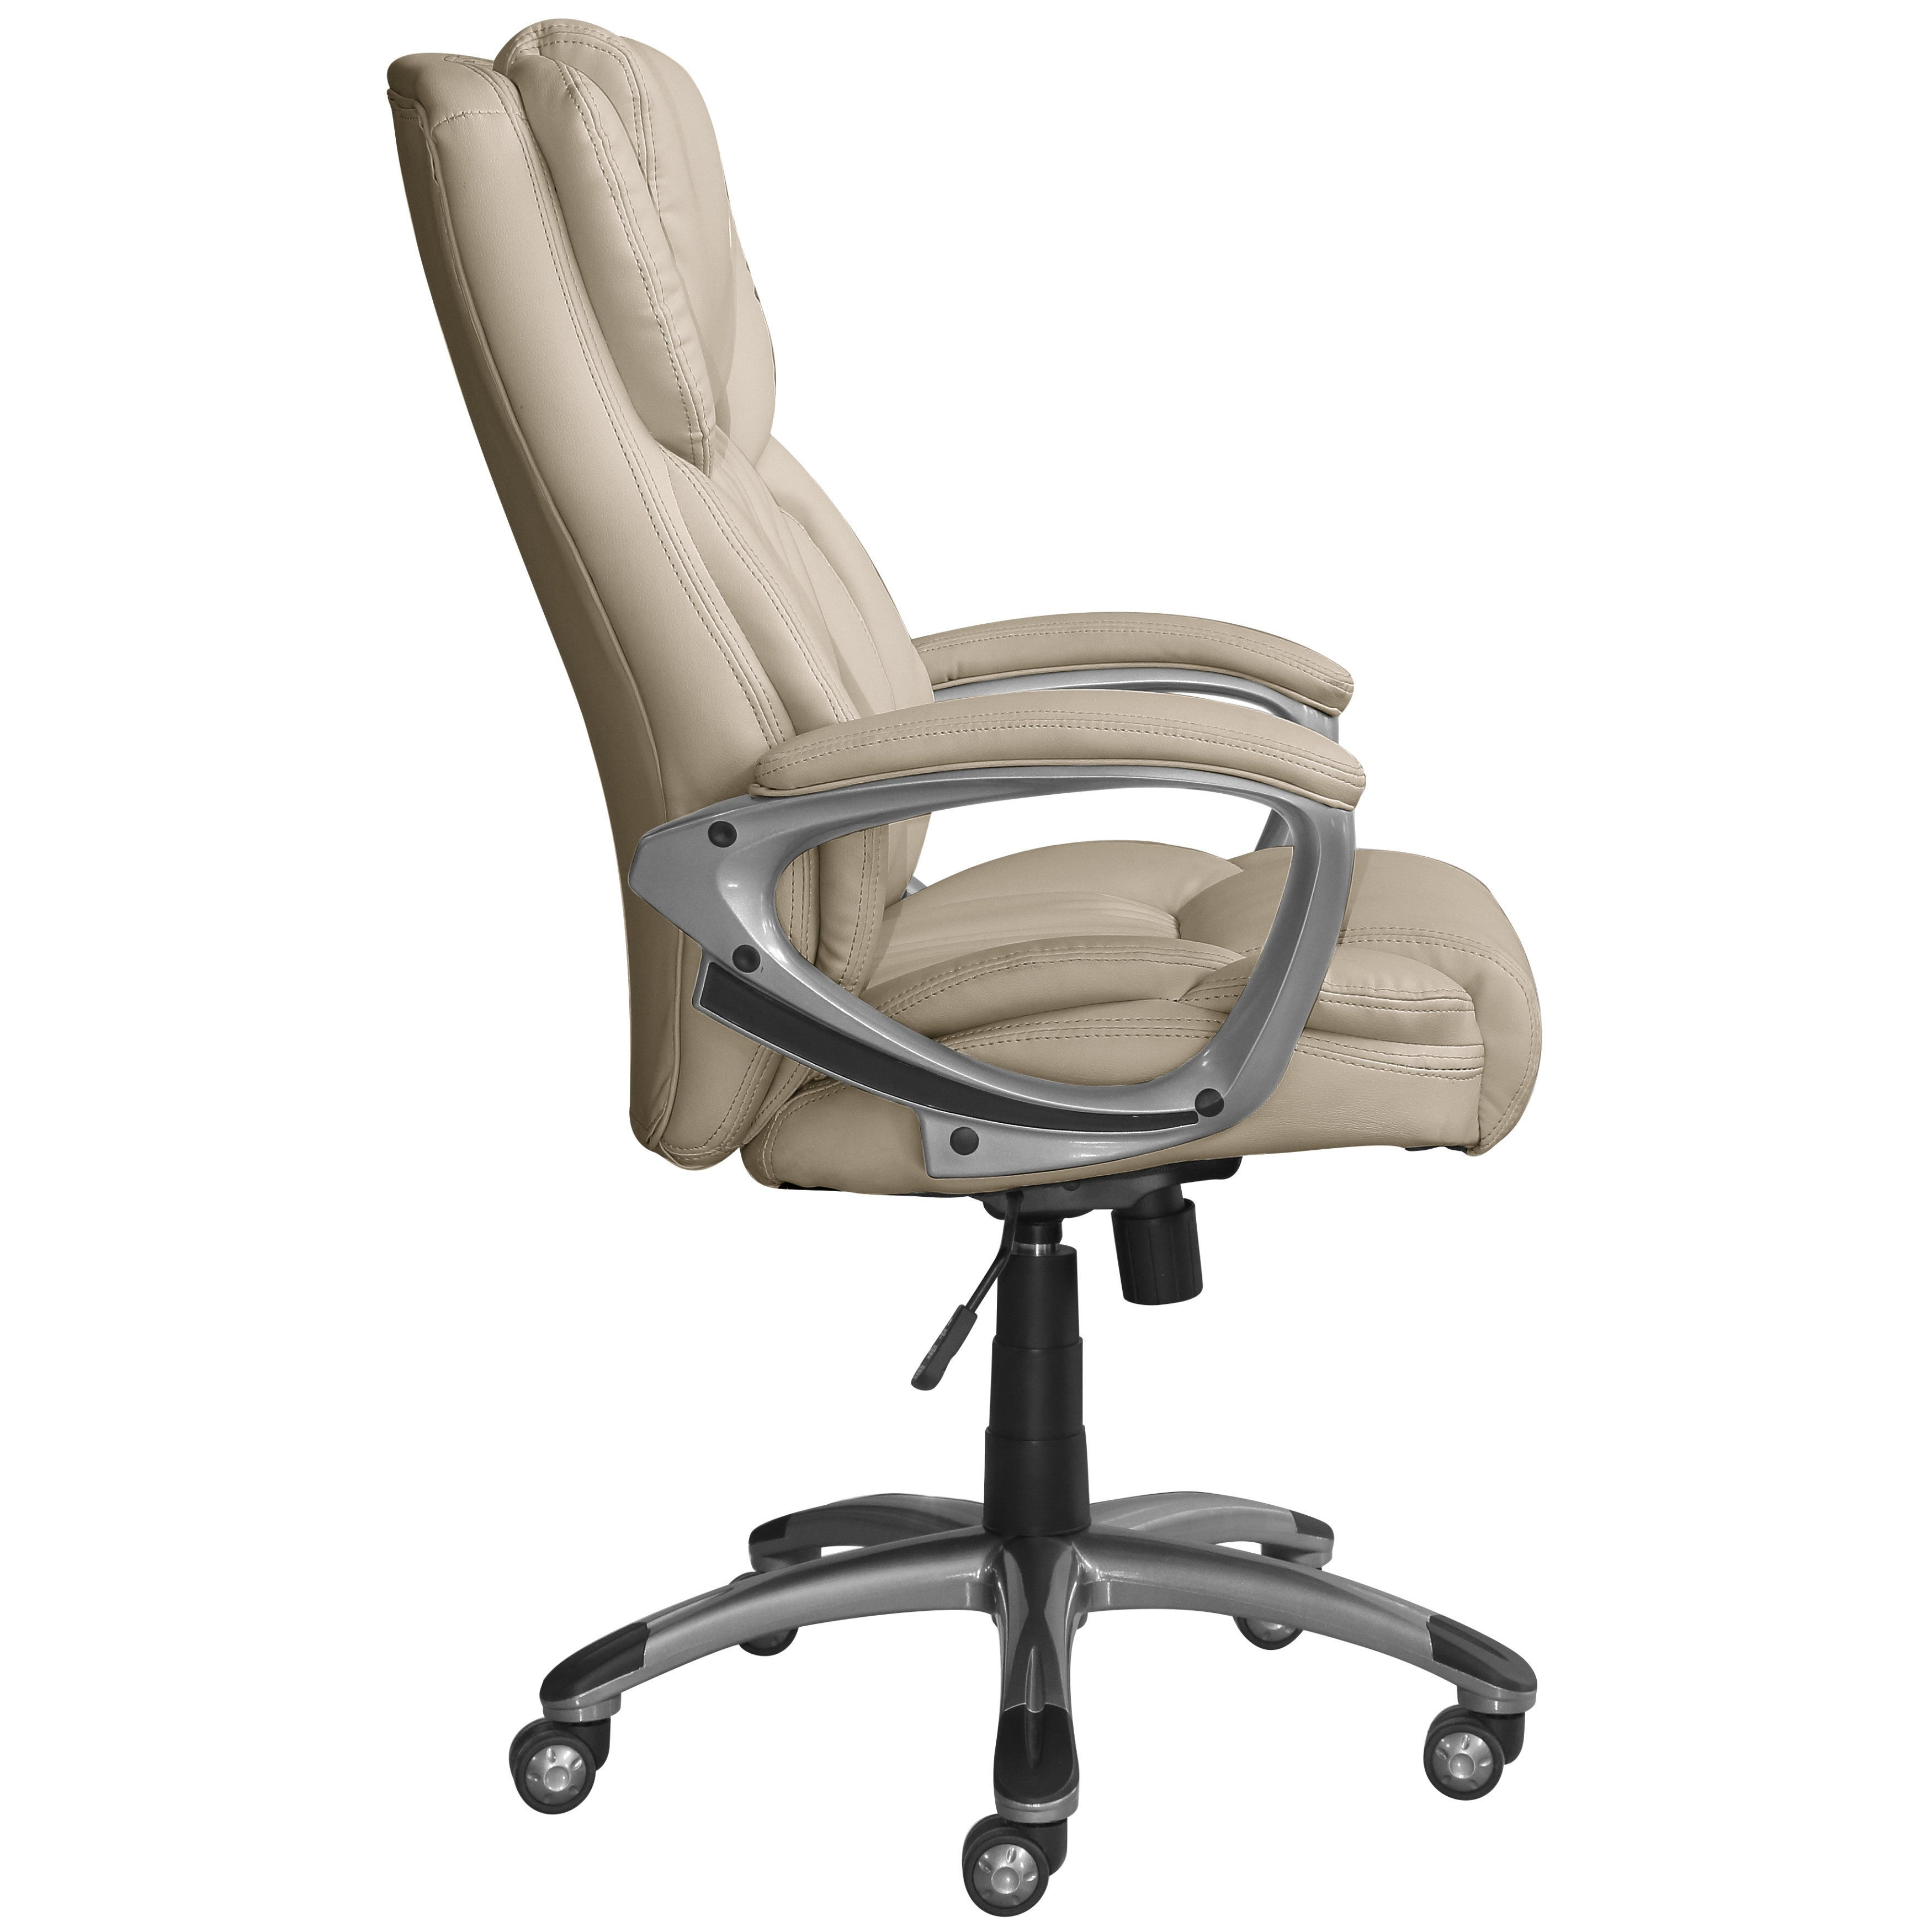 Beautiful Serta Works Bonded Leather Executive Office Chair   Free Shipping Today    Overstock   24180866